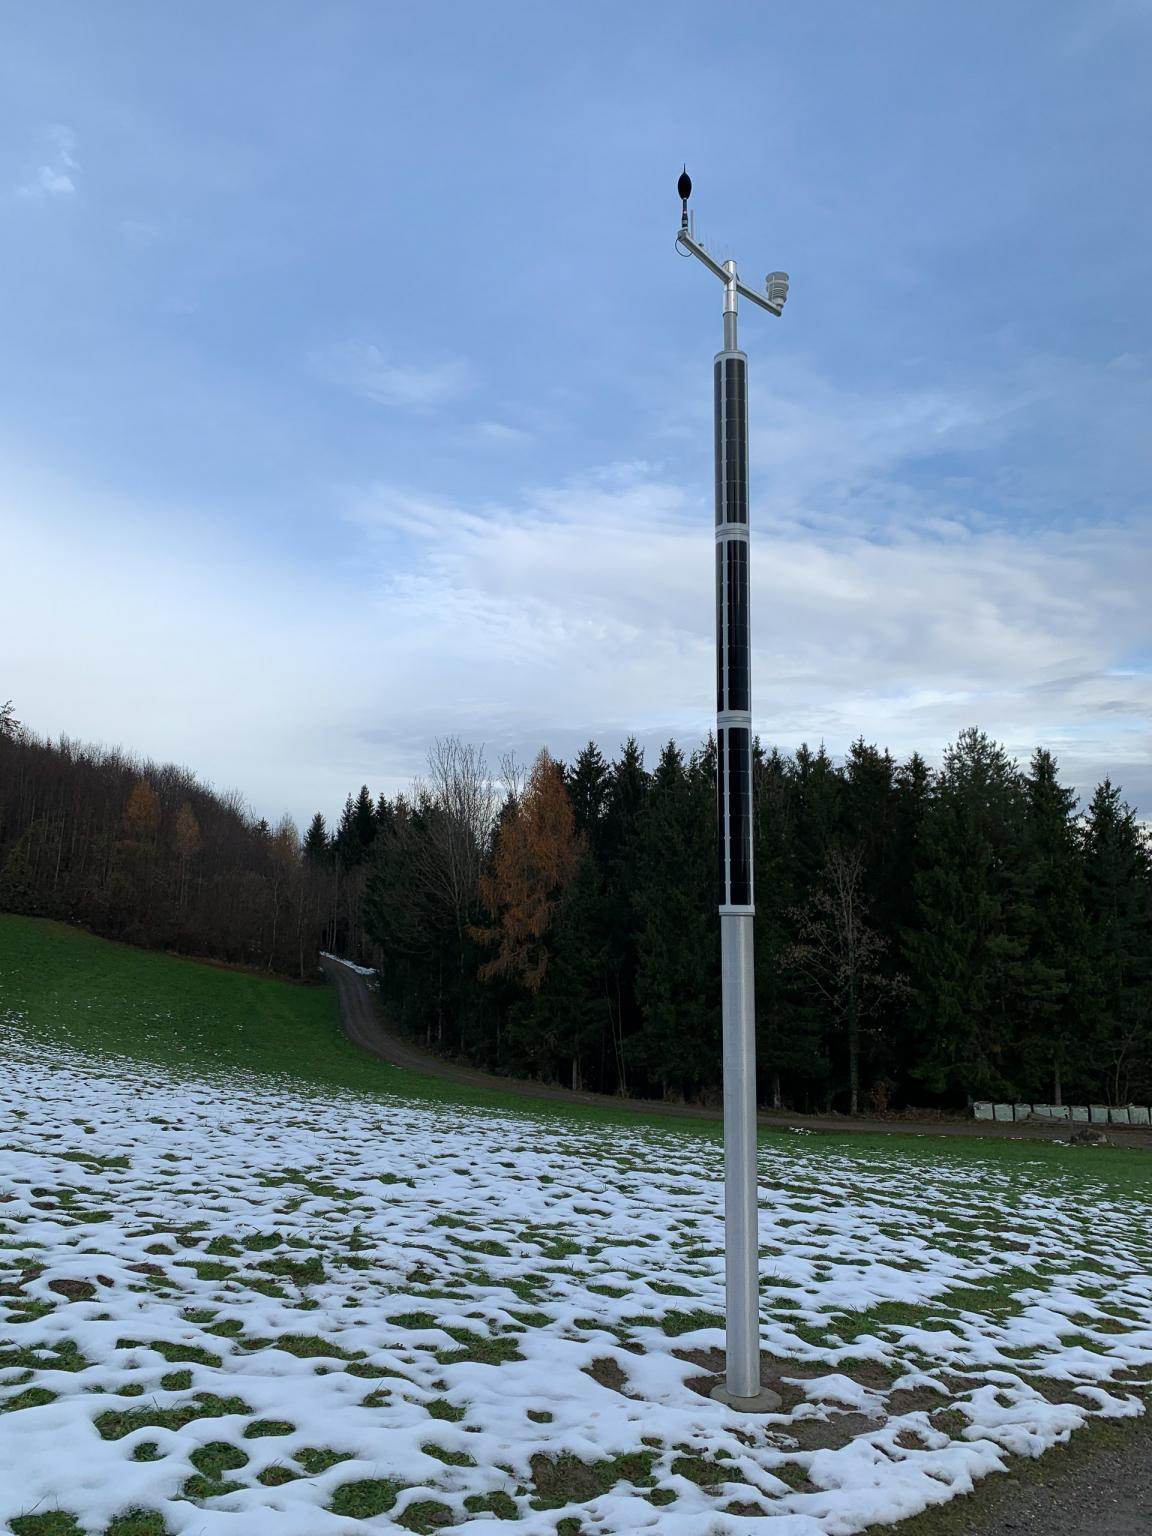 Soluxio smart pole connected